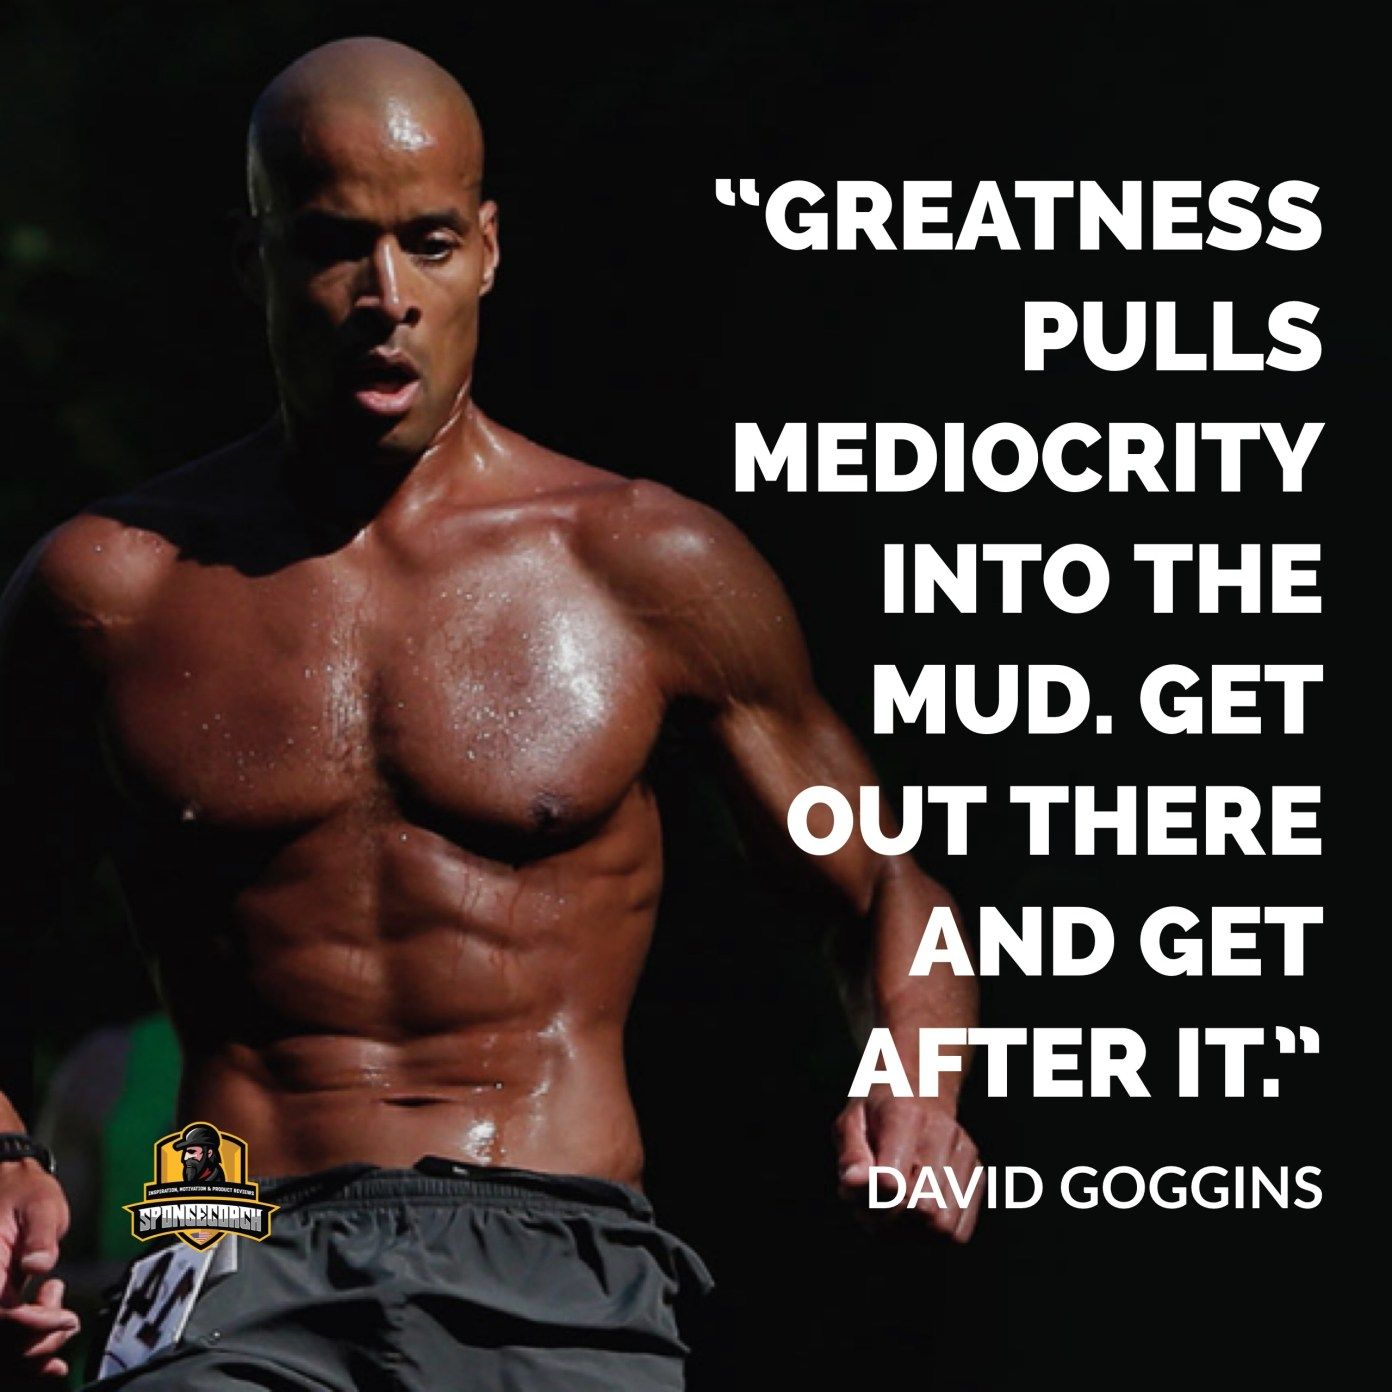 Best David Goggins Quotes On Greatness Pulls Mediocrity Into The Mud David Goggins Quotes Goggins Quotes David Goggins